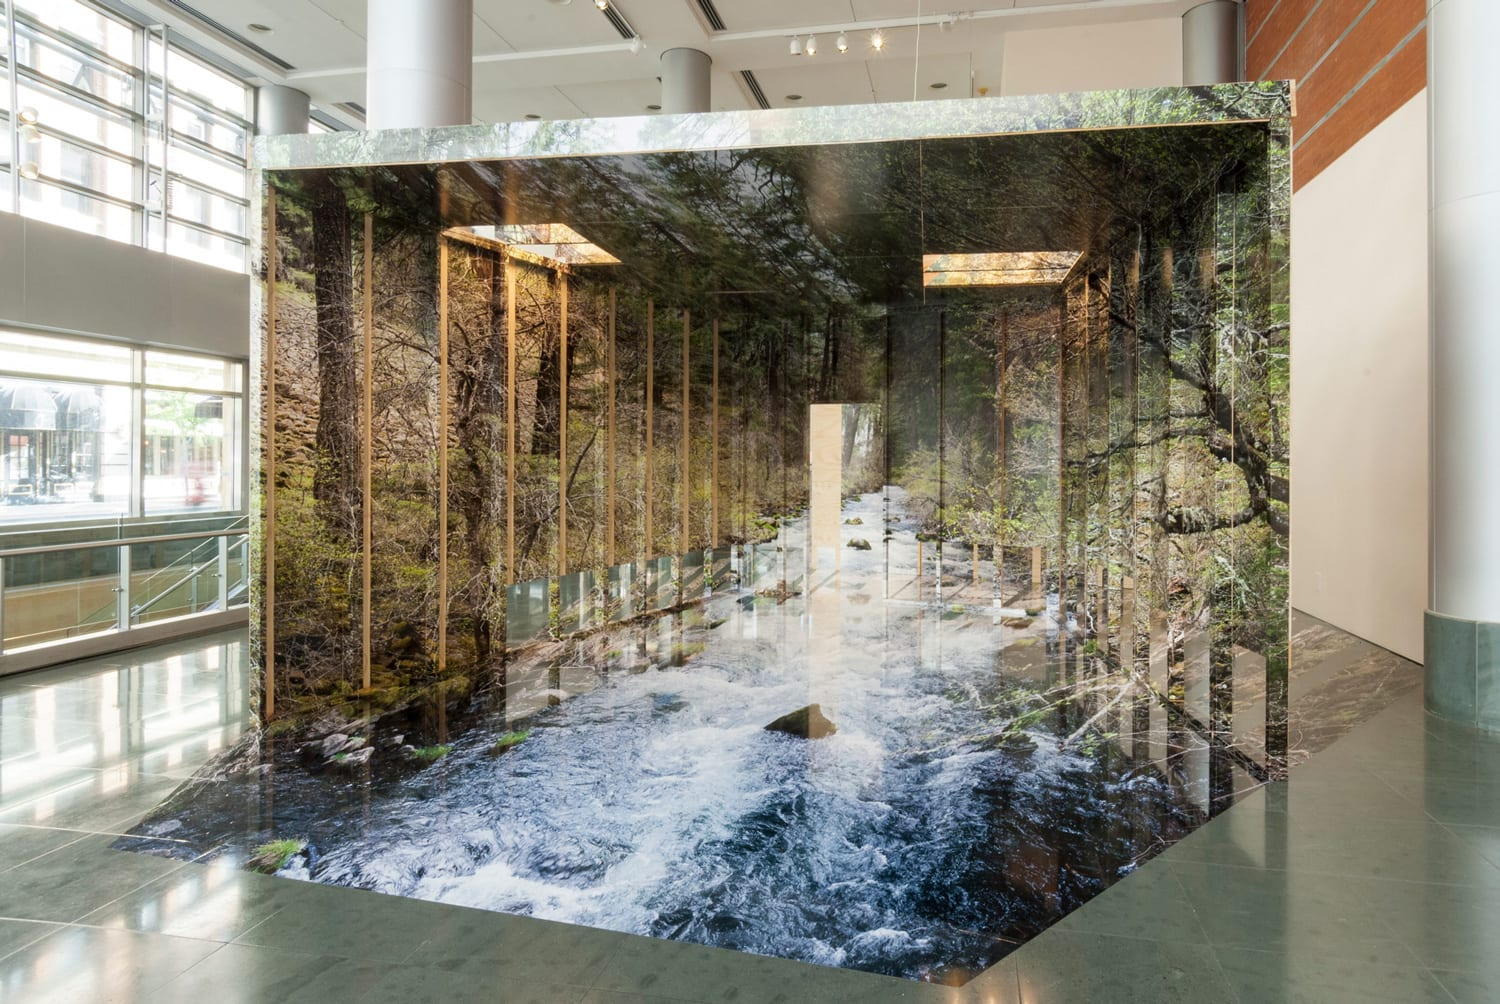 Chris Engman's Dazzling Installations & Photographic Illusions   Yellowtrace